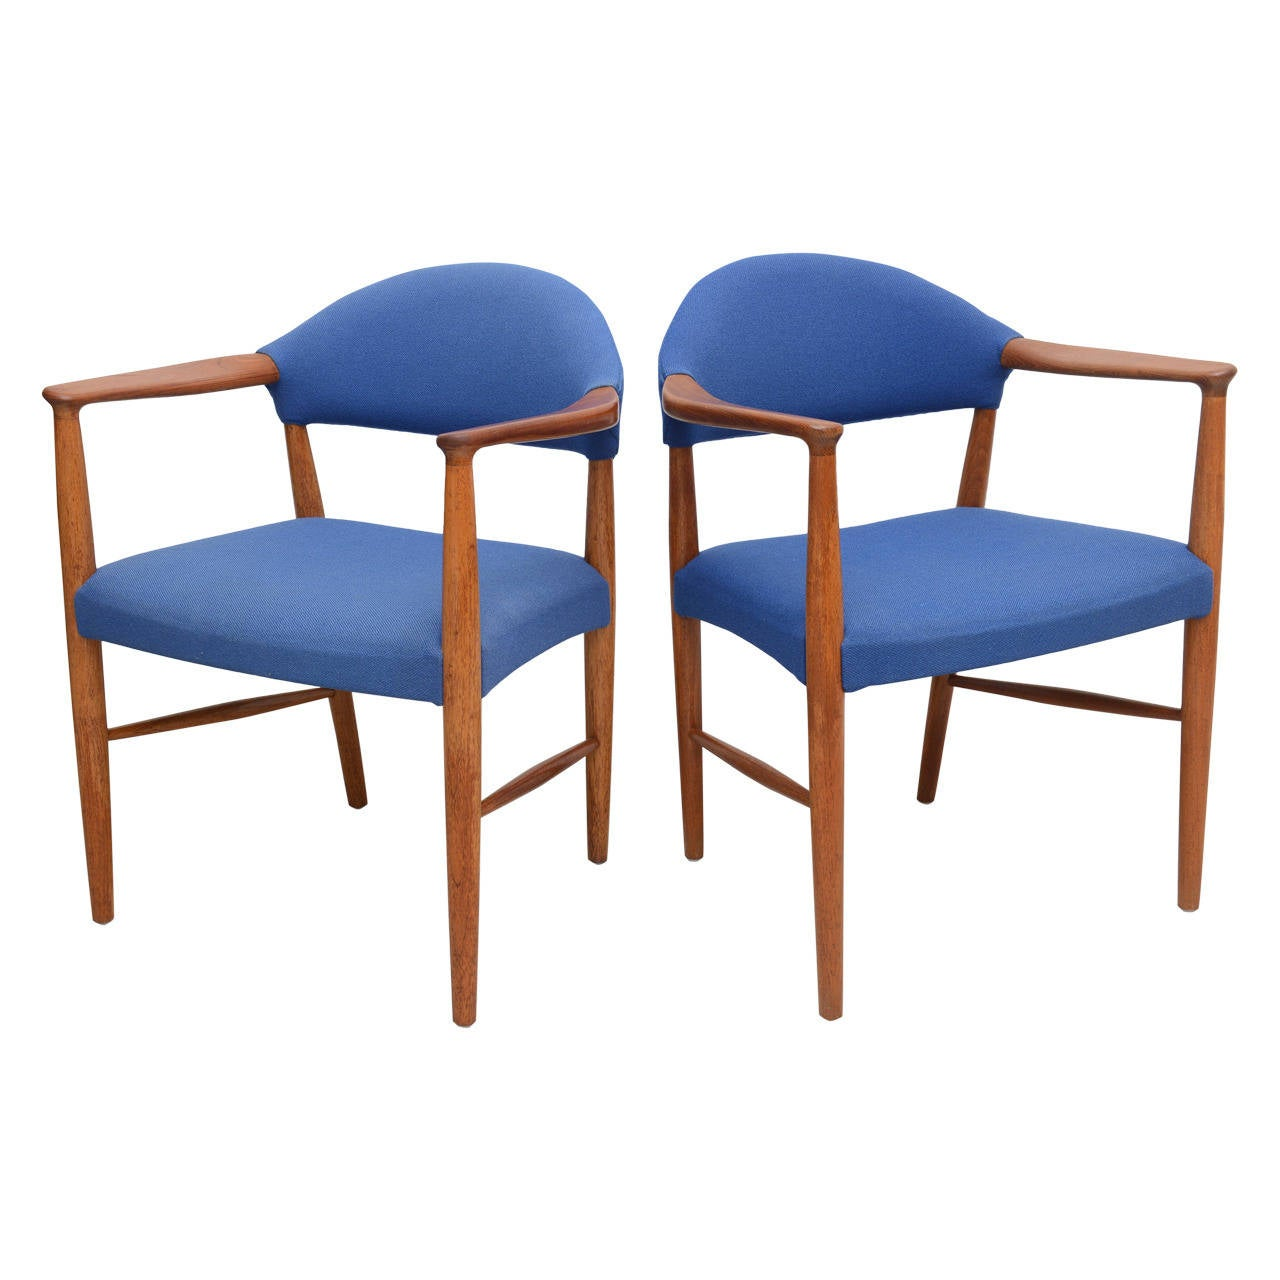 Pair Of Danish Modern Mid Century Teak And Oak Armchairs For Sale At 1stdibs